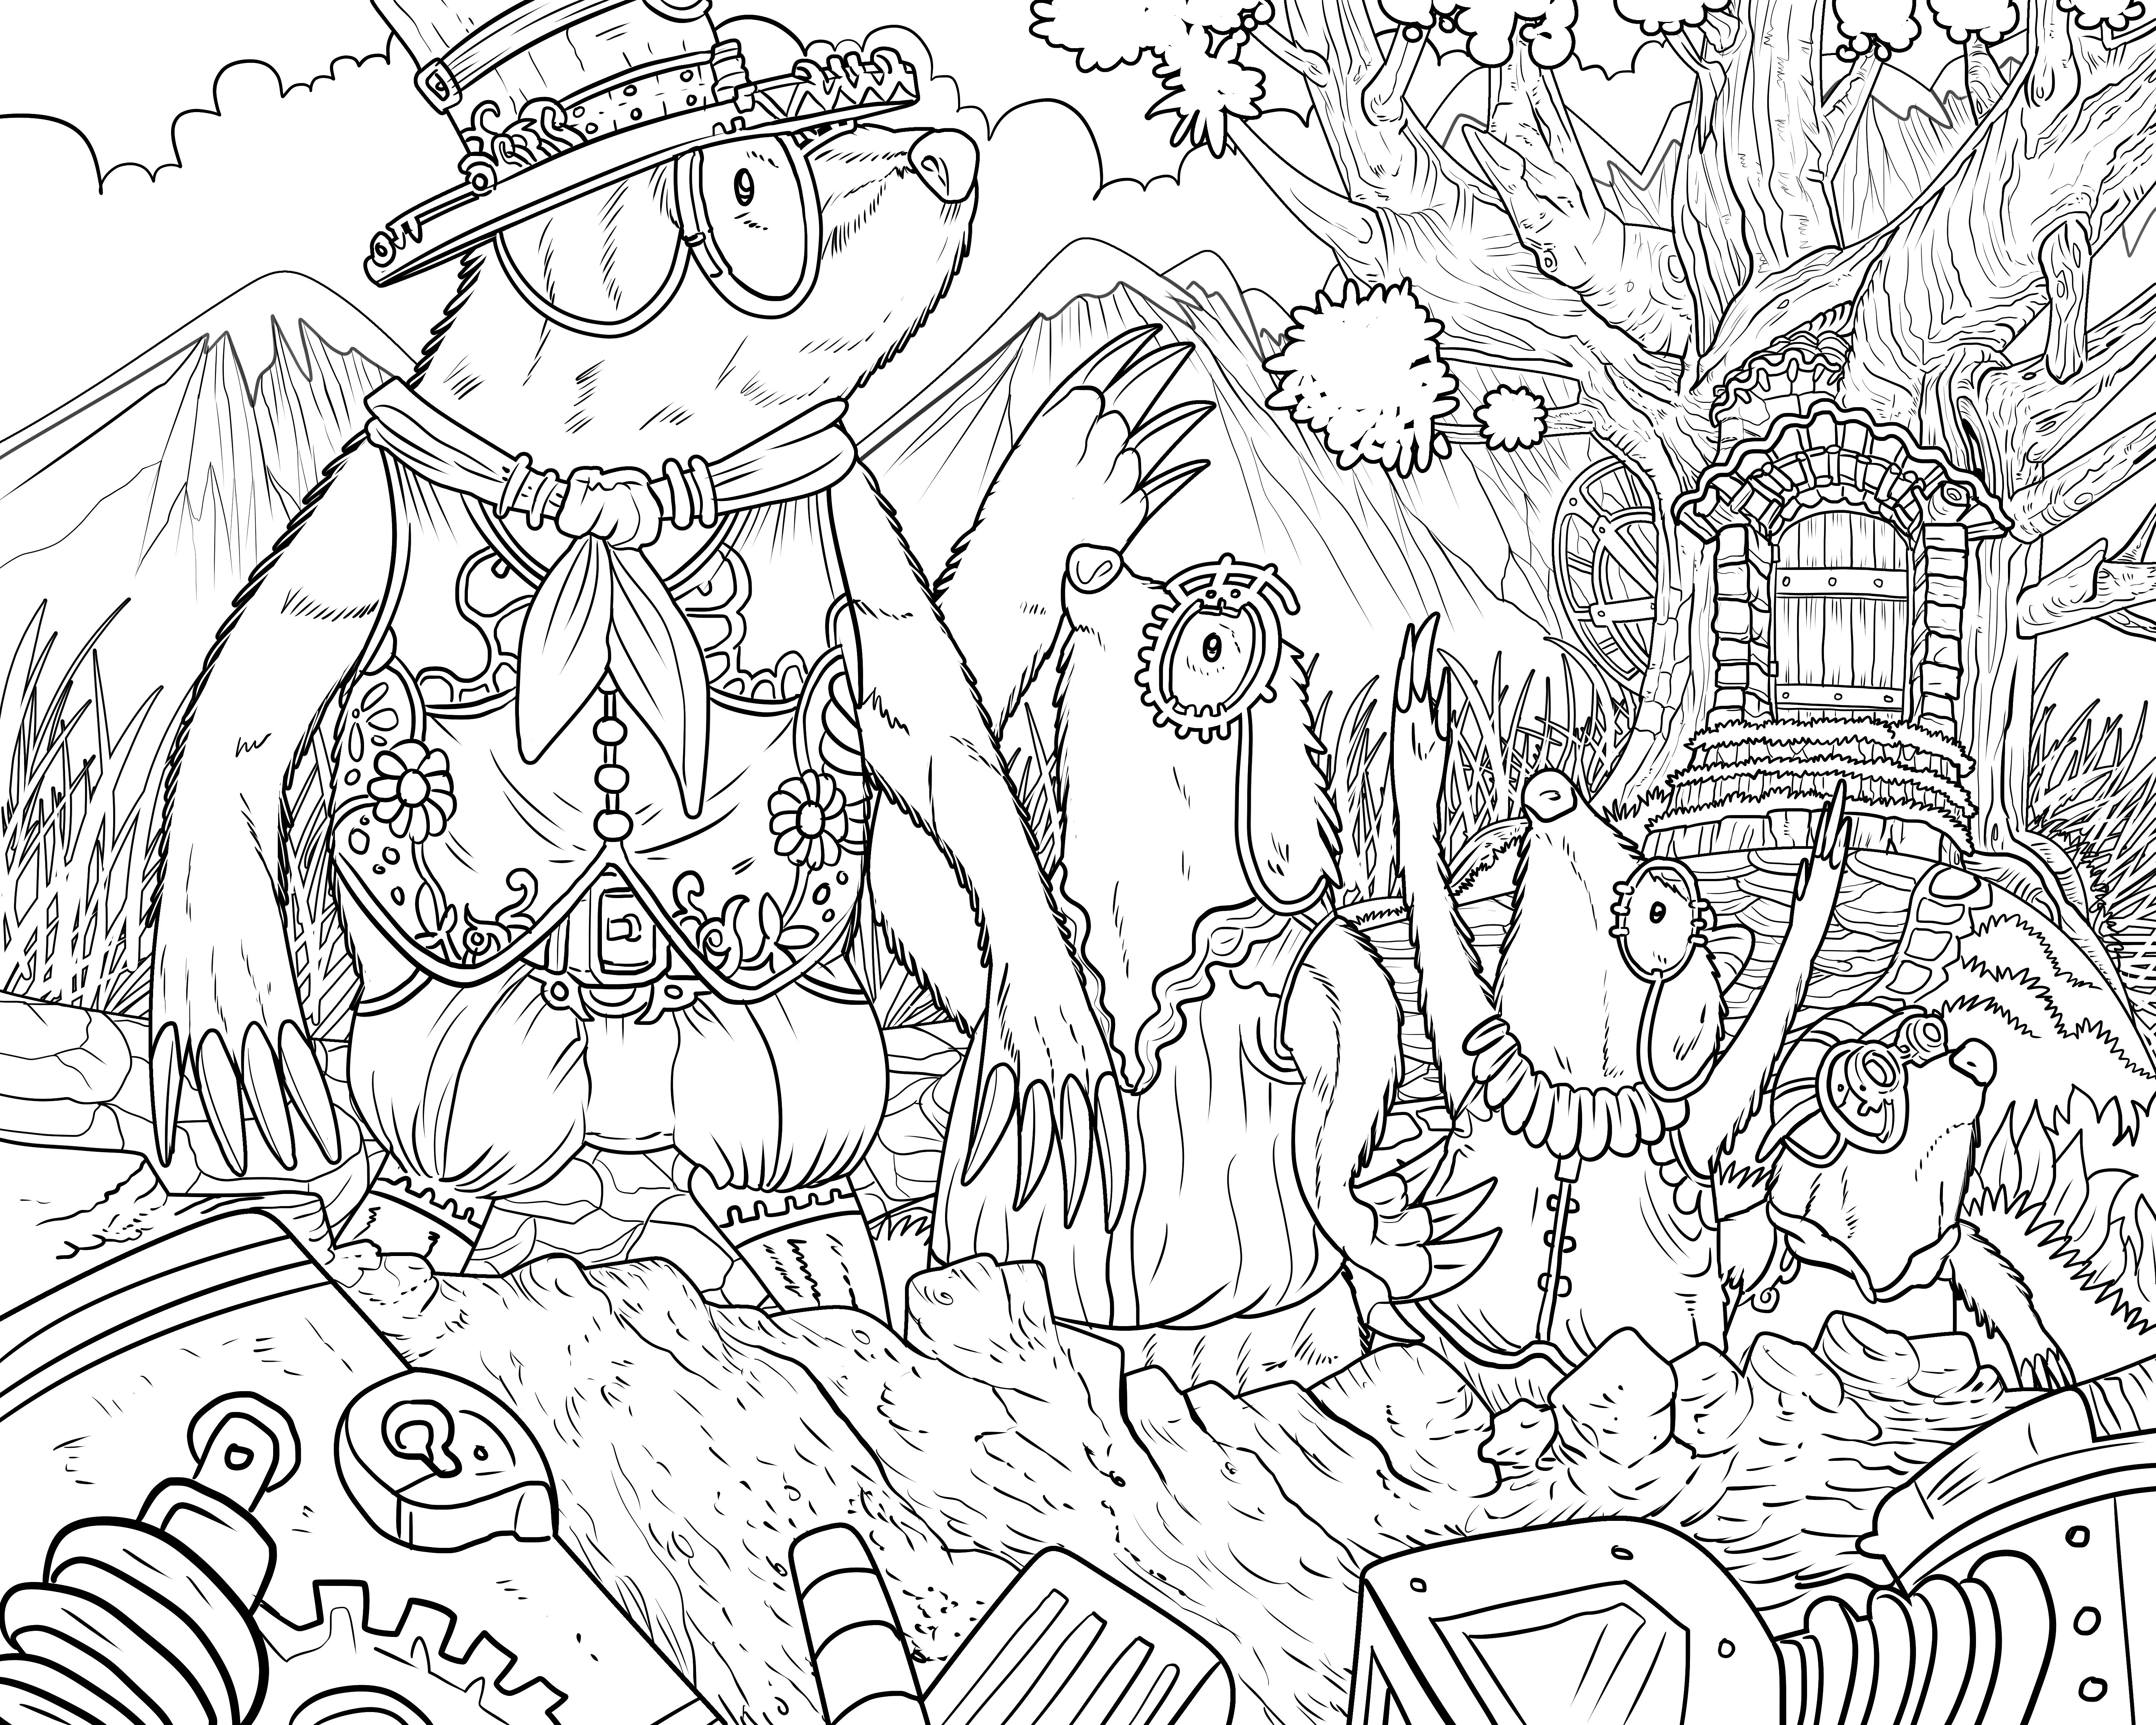 Mythological Creatures Coloring Pages  Download 11p - To print for your project